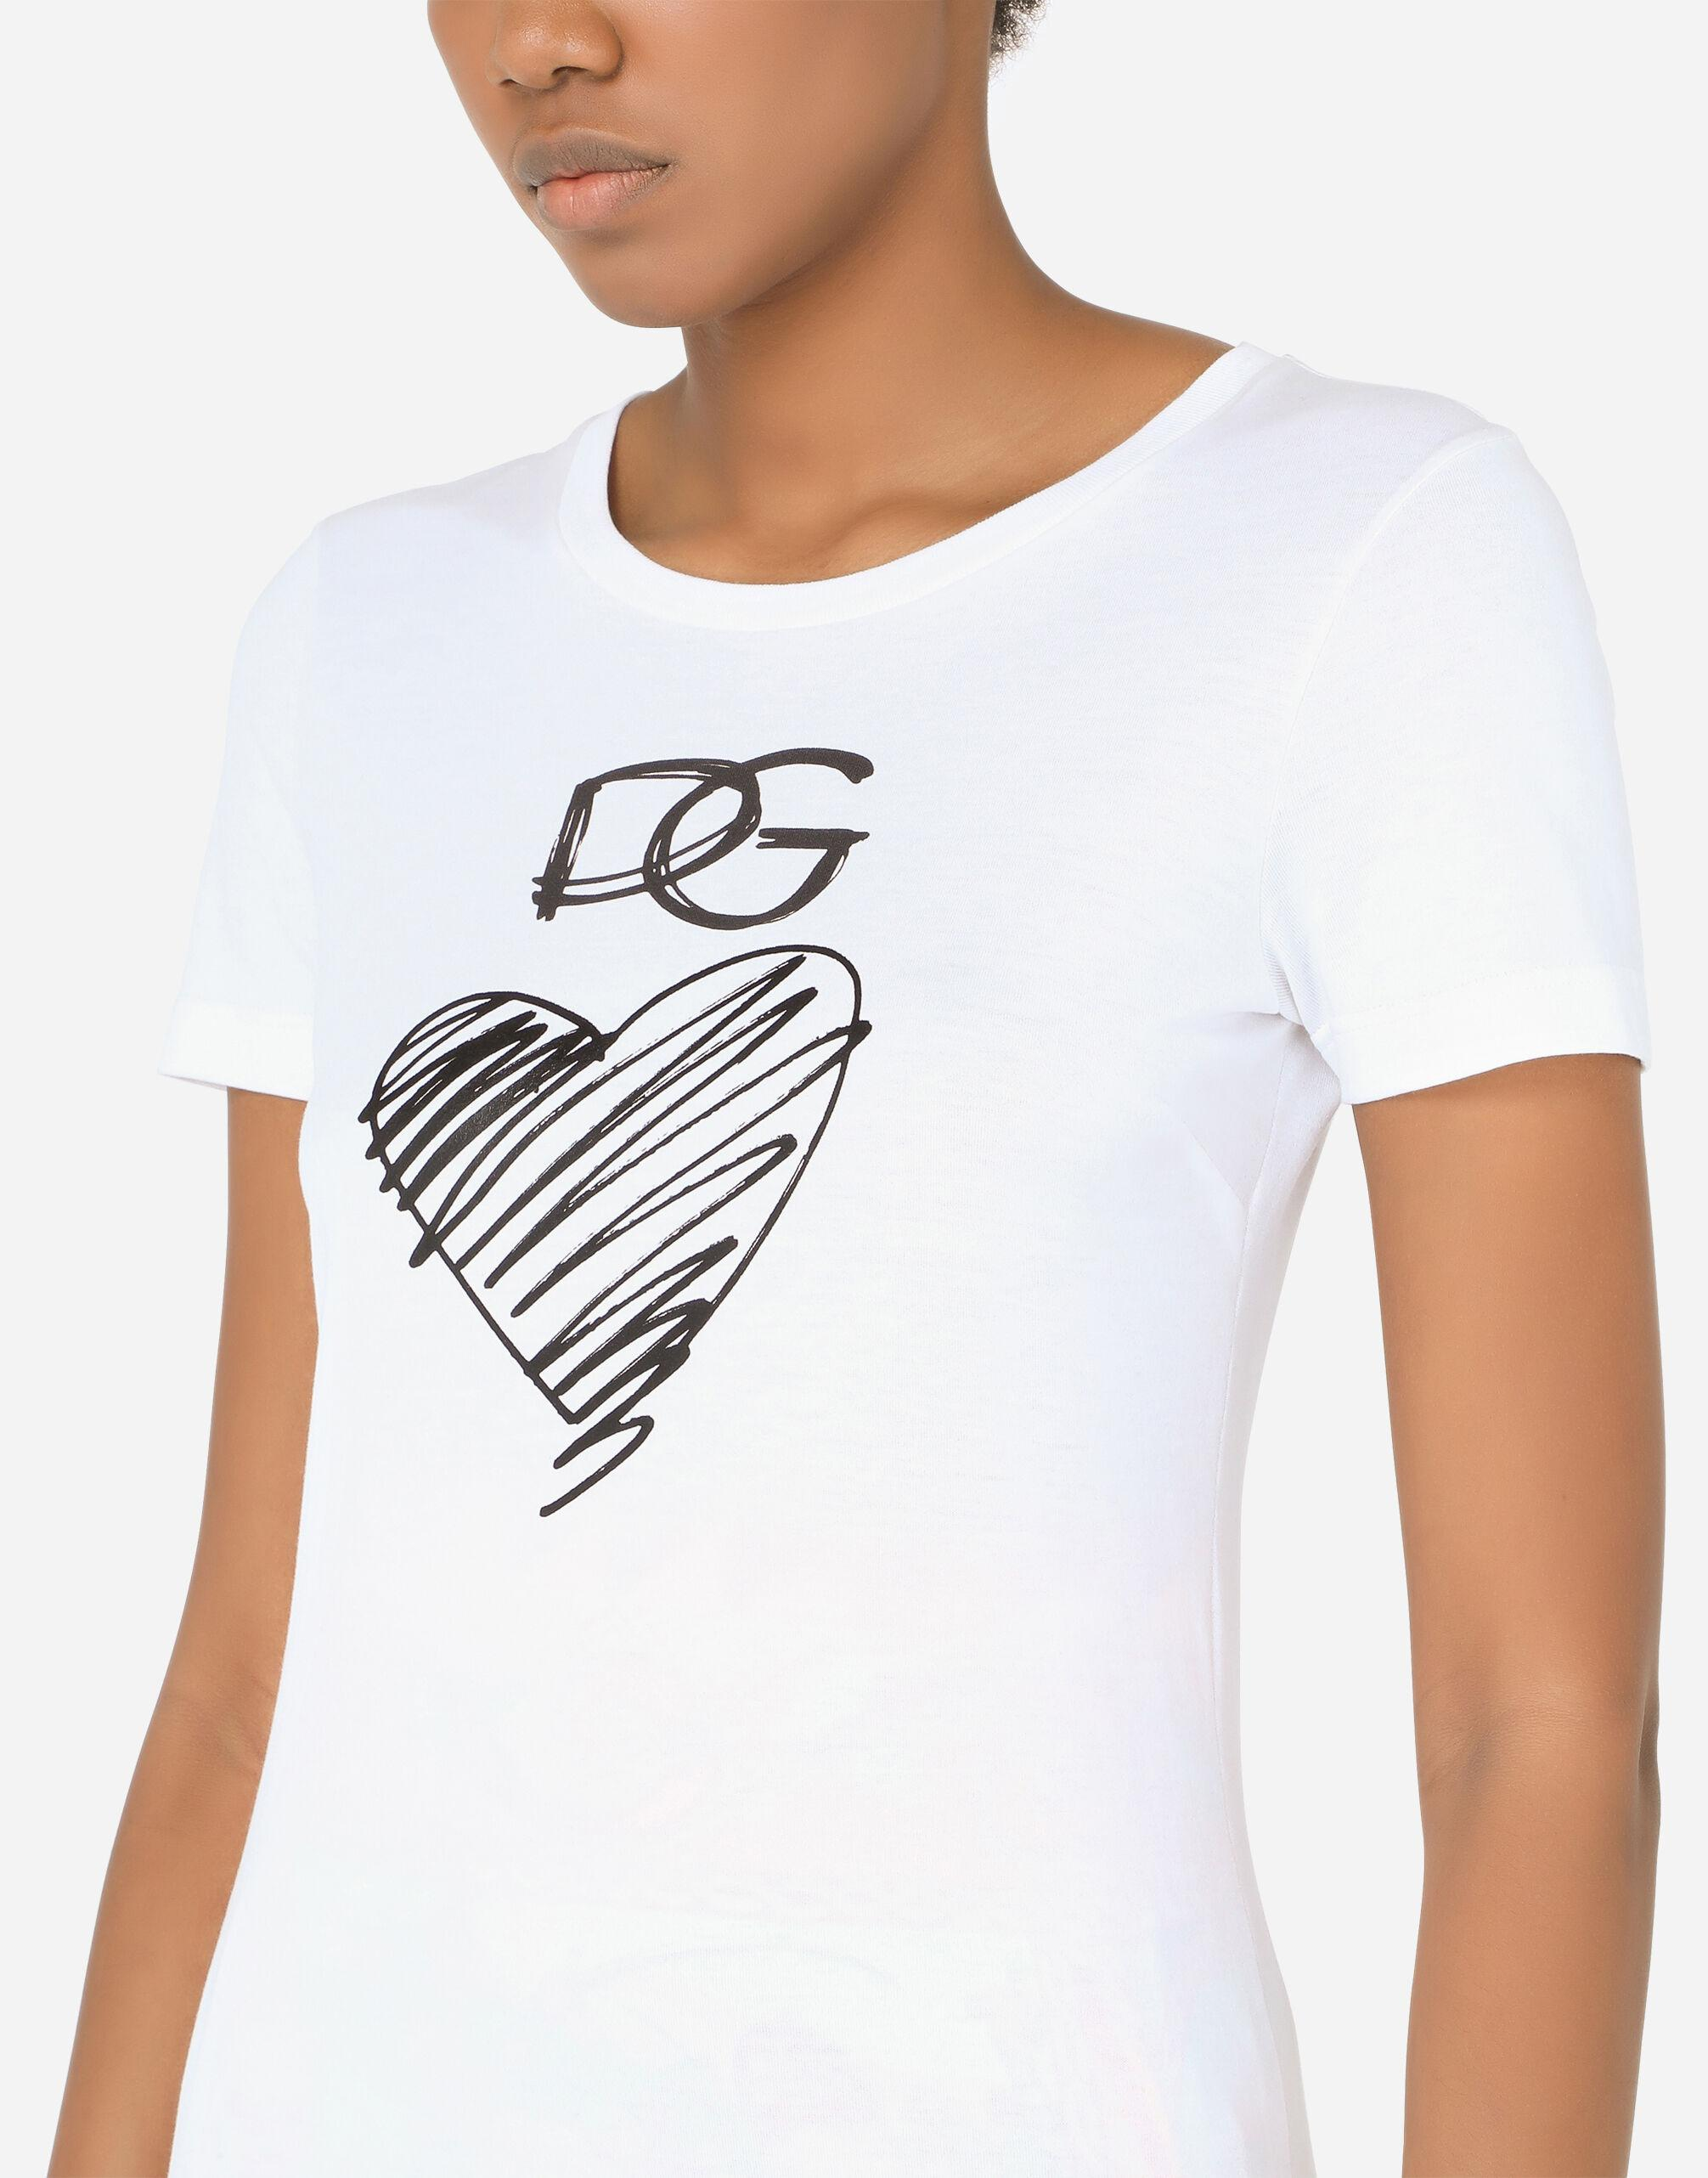 Jersey T-shirt with DG and heart print 4